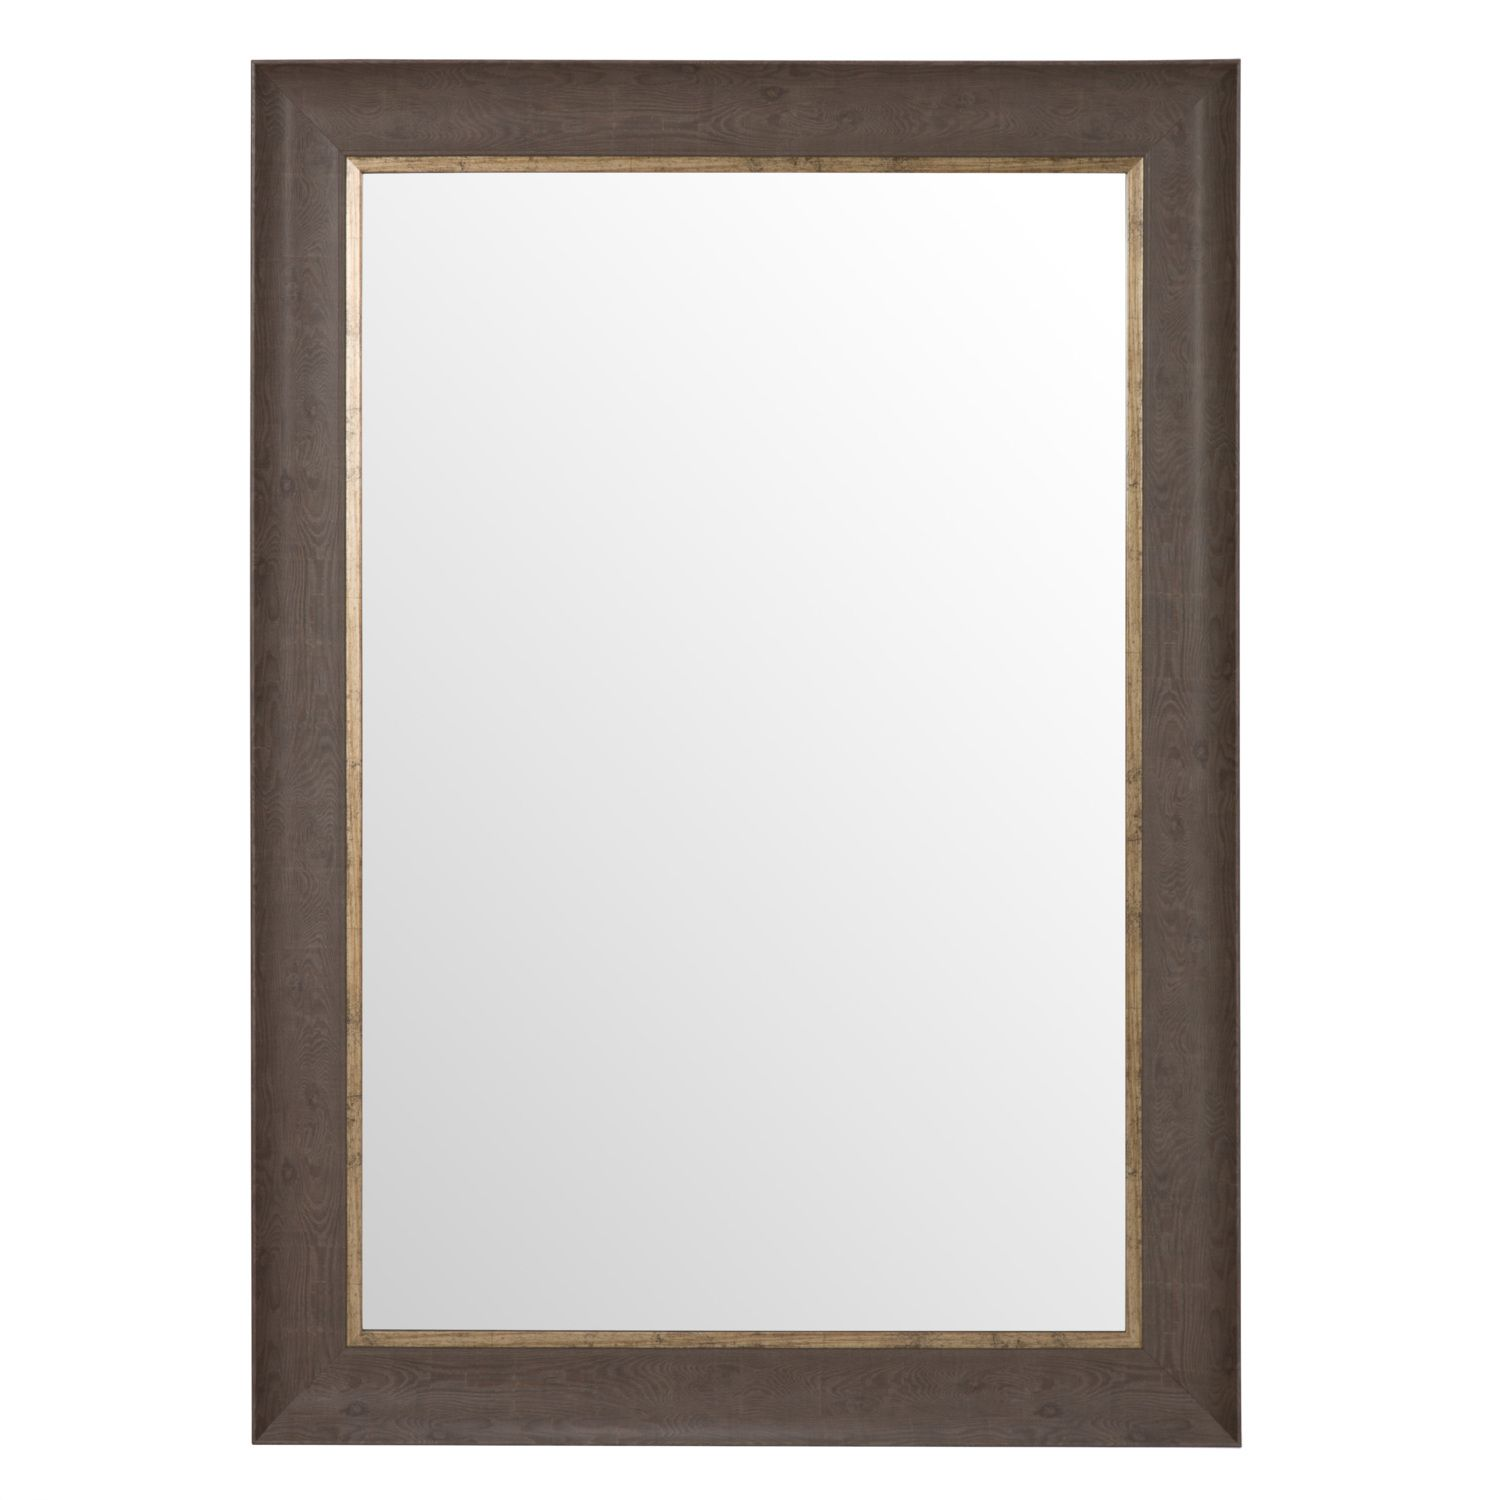 Conran Gold Edge Mirror